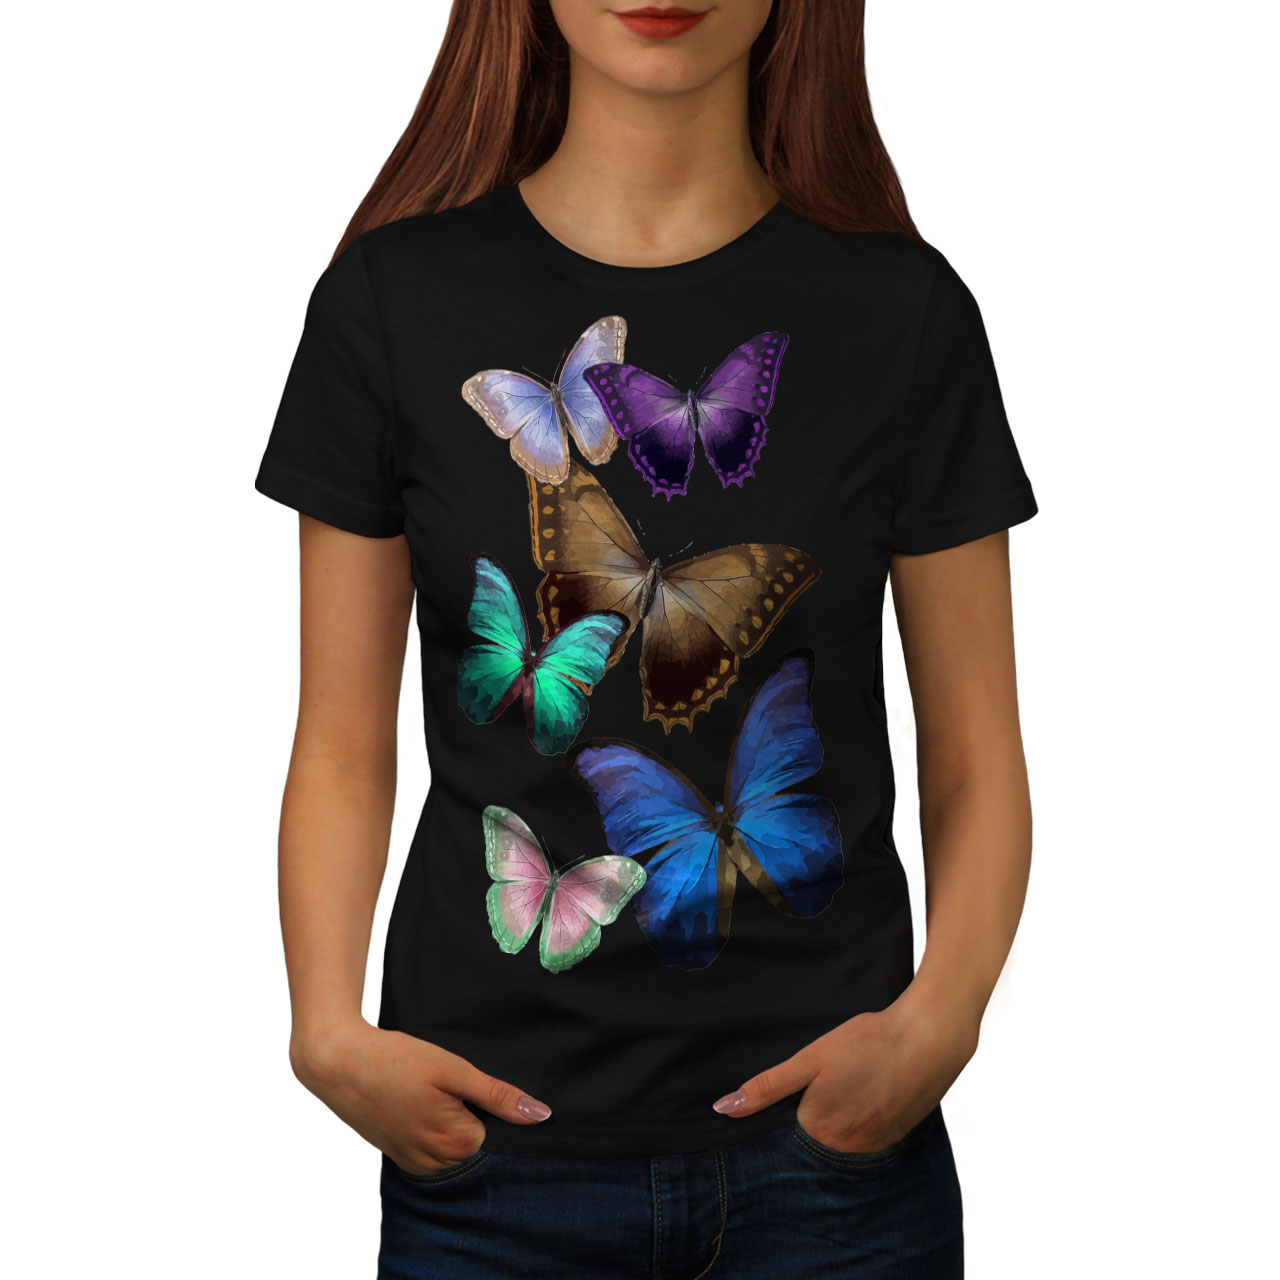 Wellcoda Butterfly Colorful Womens Long Sleeve T-shirt Nature Casual Design